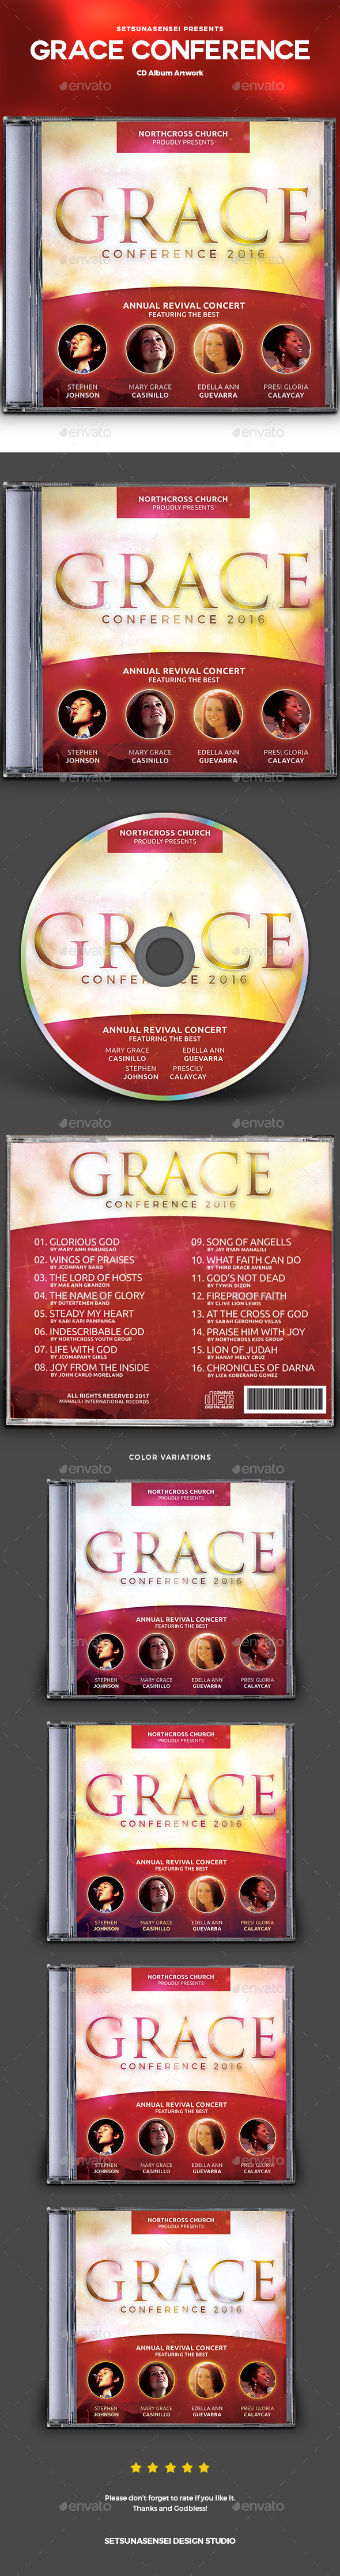 Grace Conference CD Album Artwork - CD & DVD Artwork Print Templates